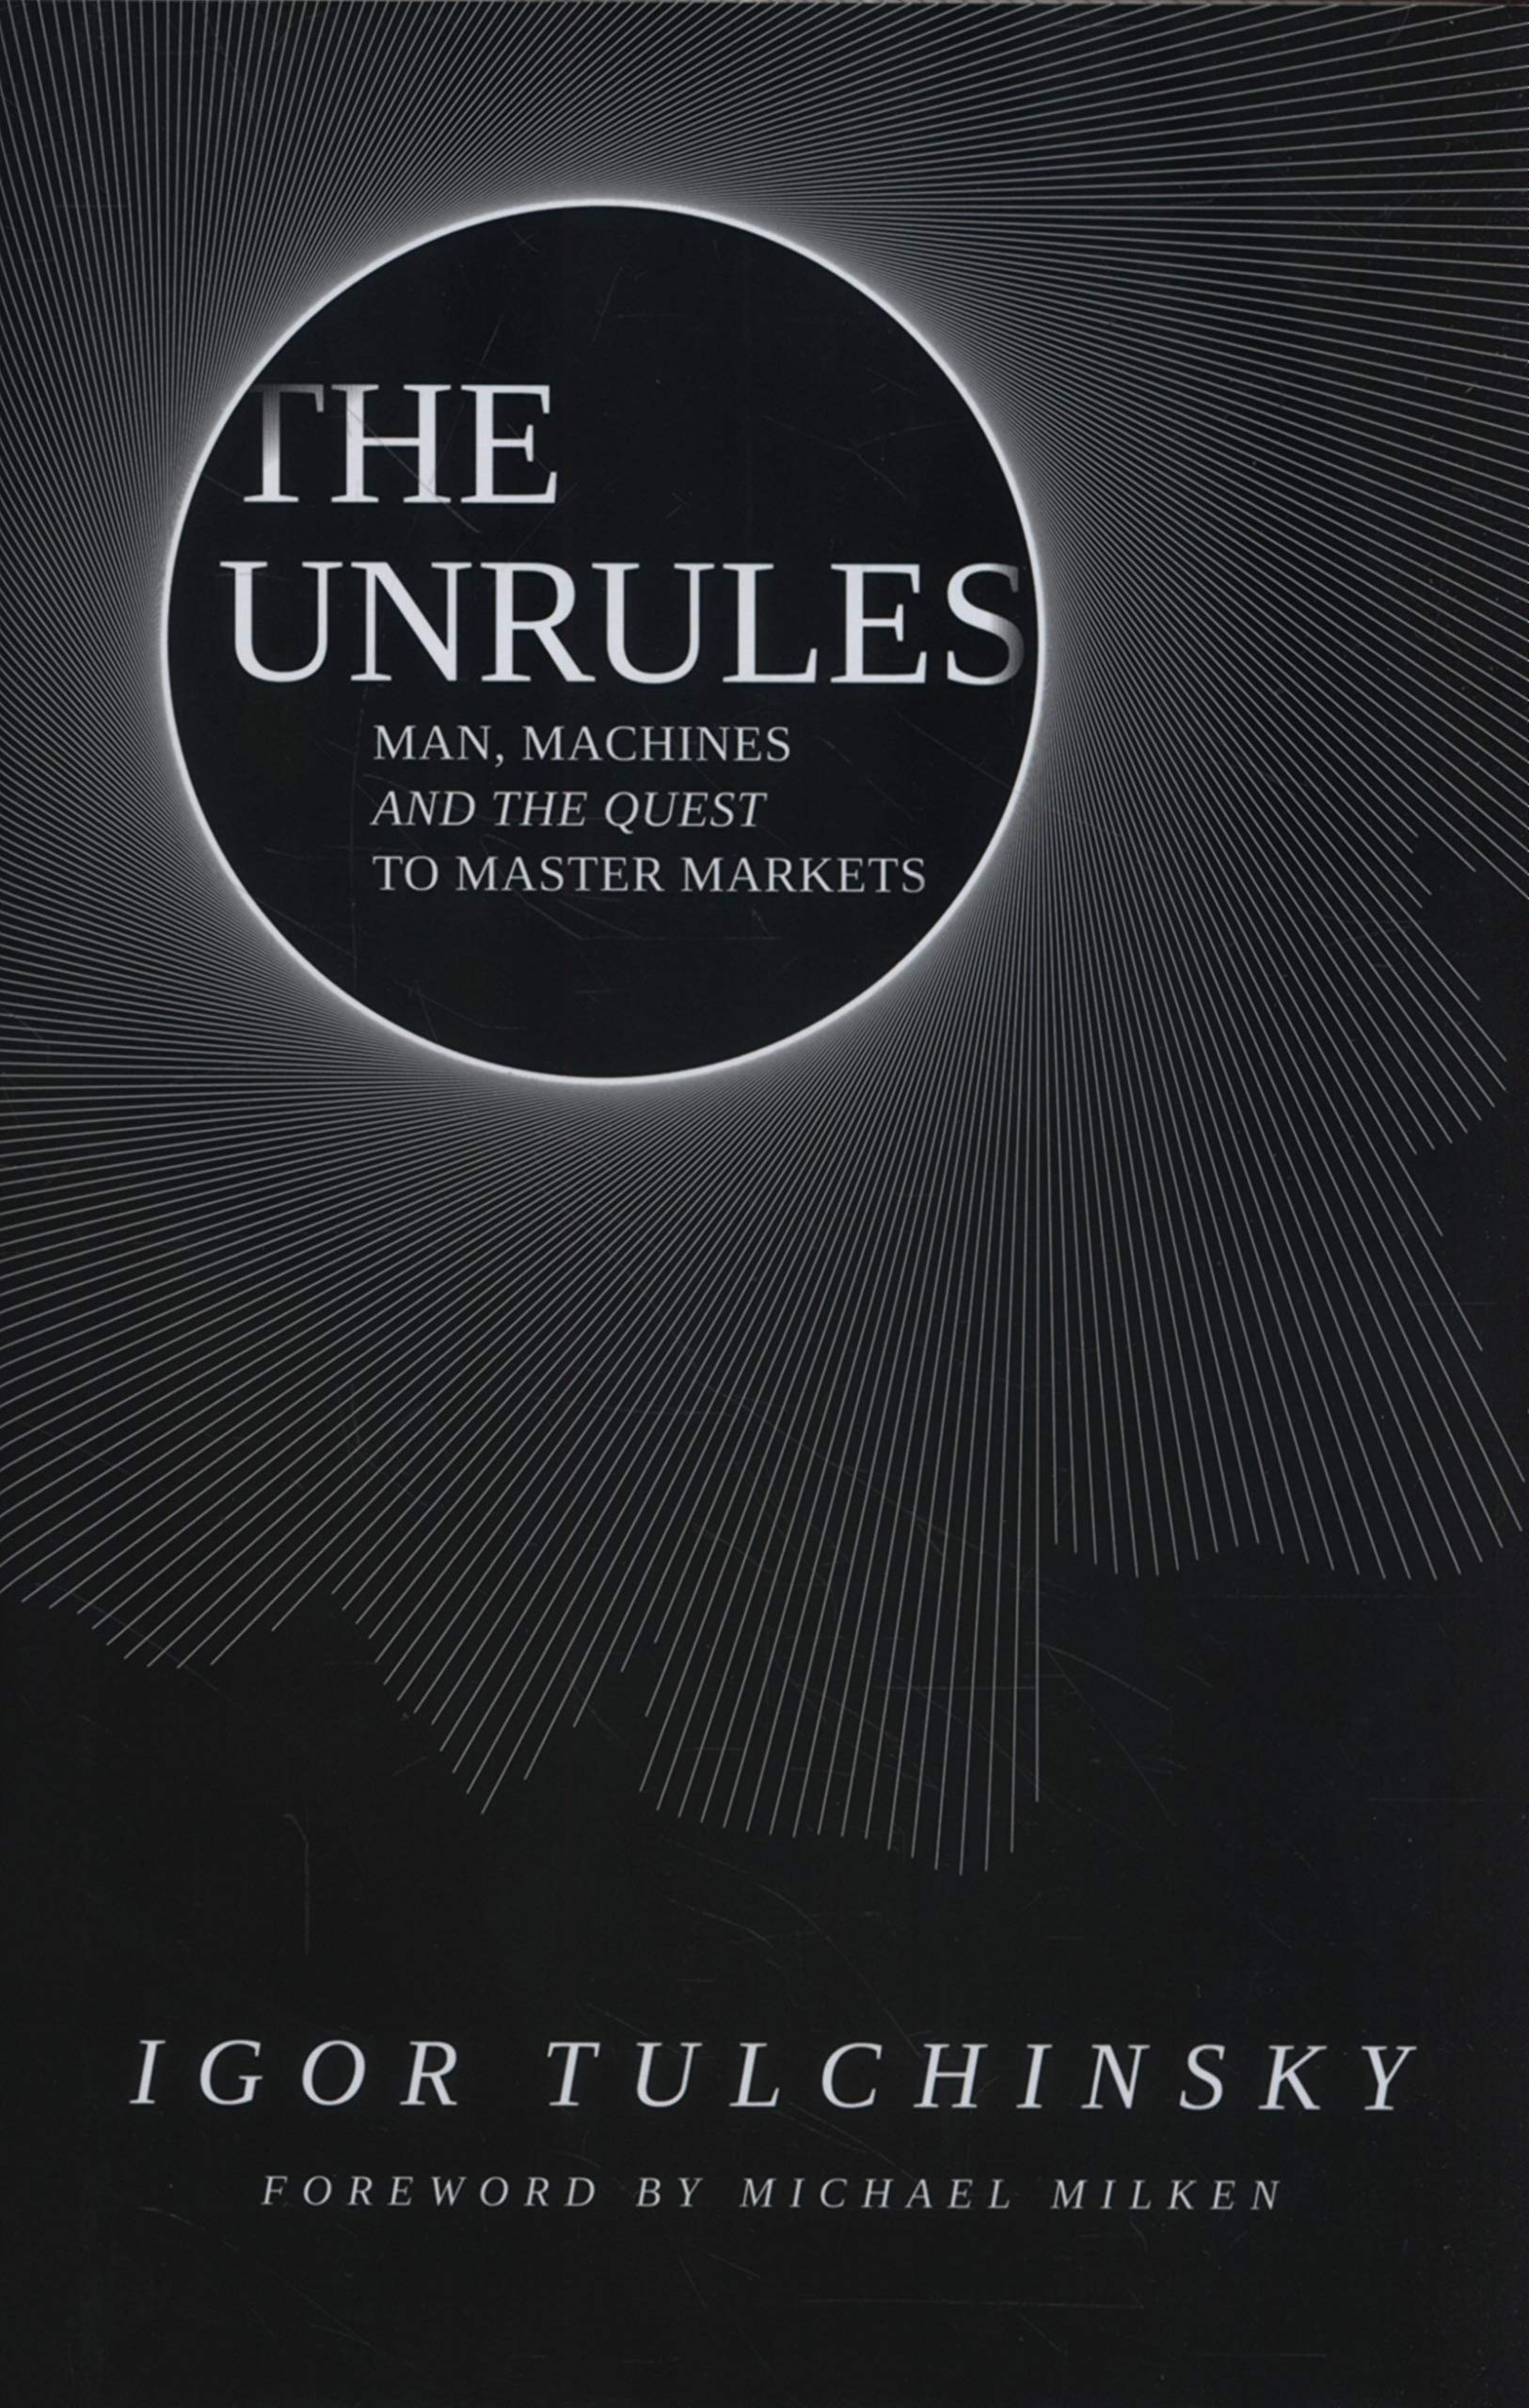 Amazon.com: The Unrules: Man, Machines and the Quest to Master Markets  (9781119372103): Igor Tulchinsky: Books